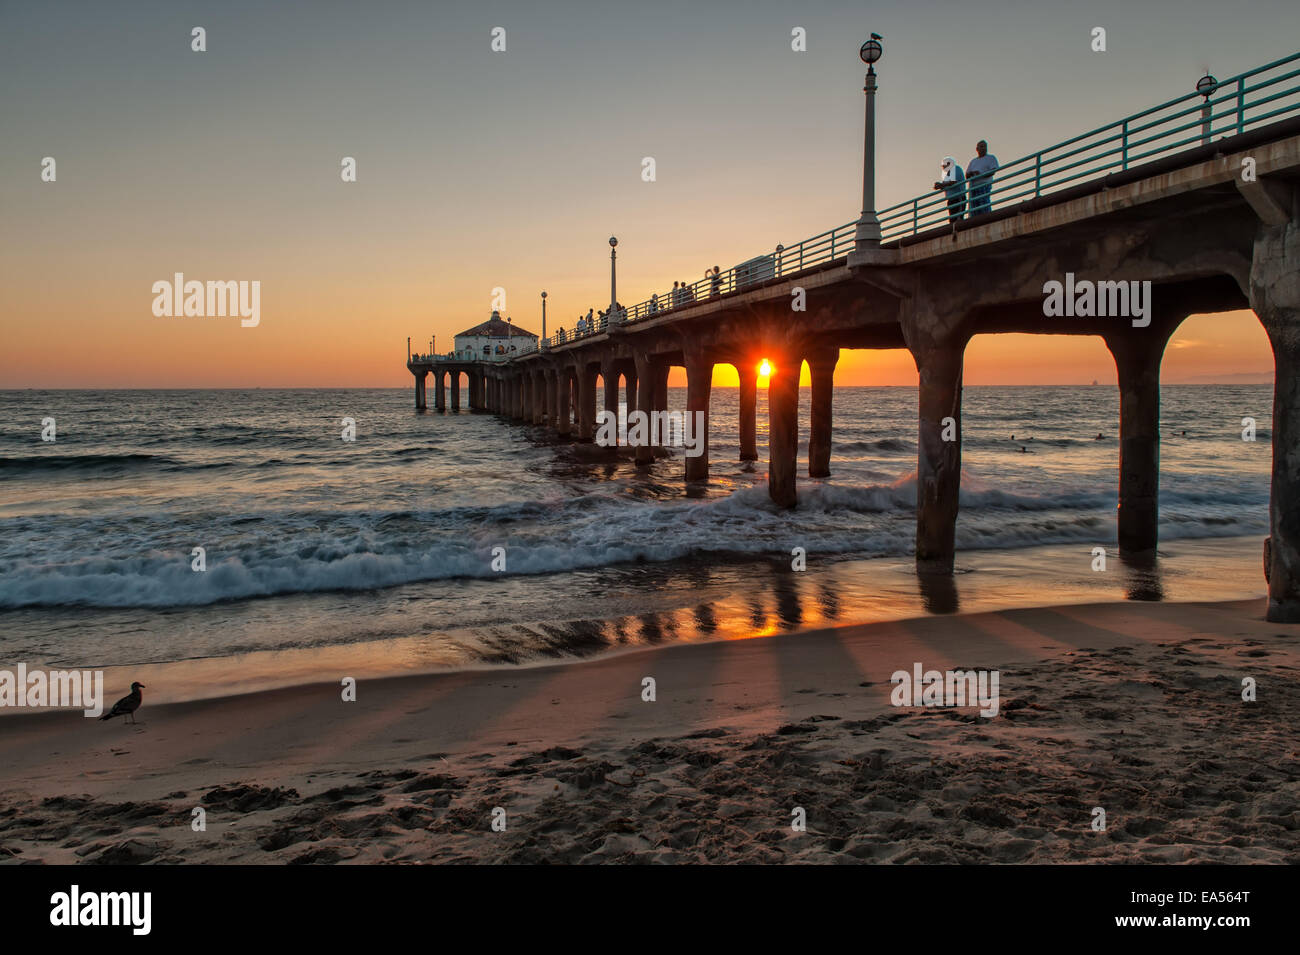 Sunset at Manhattan Beach, Los Angeles, CA - Stock Image